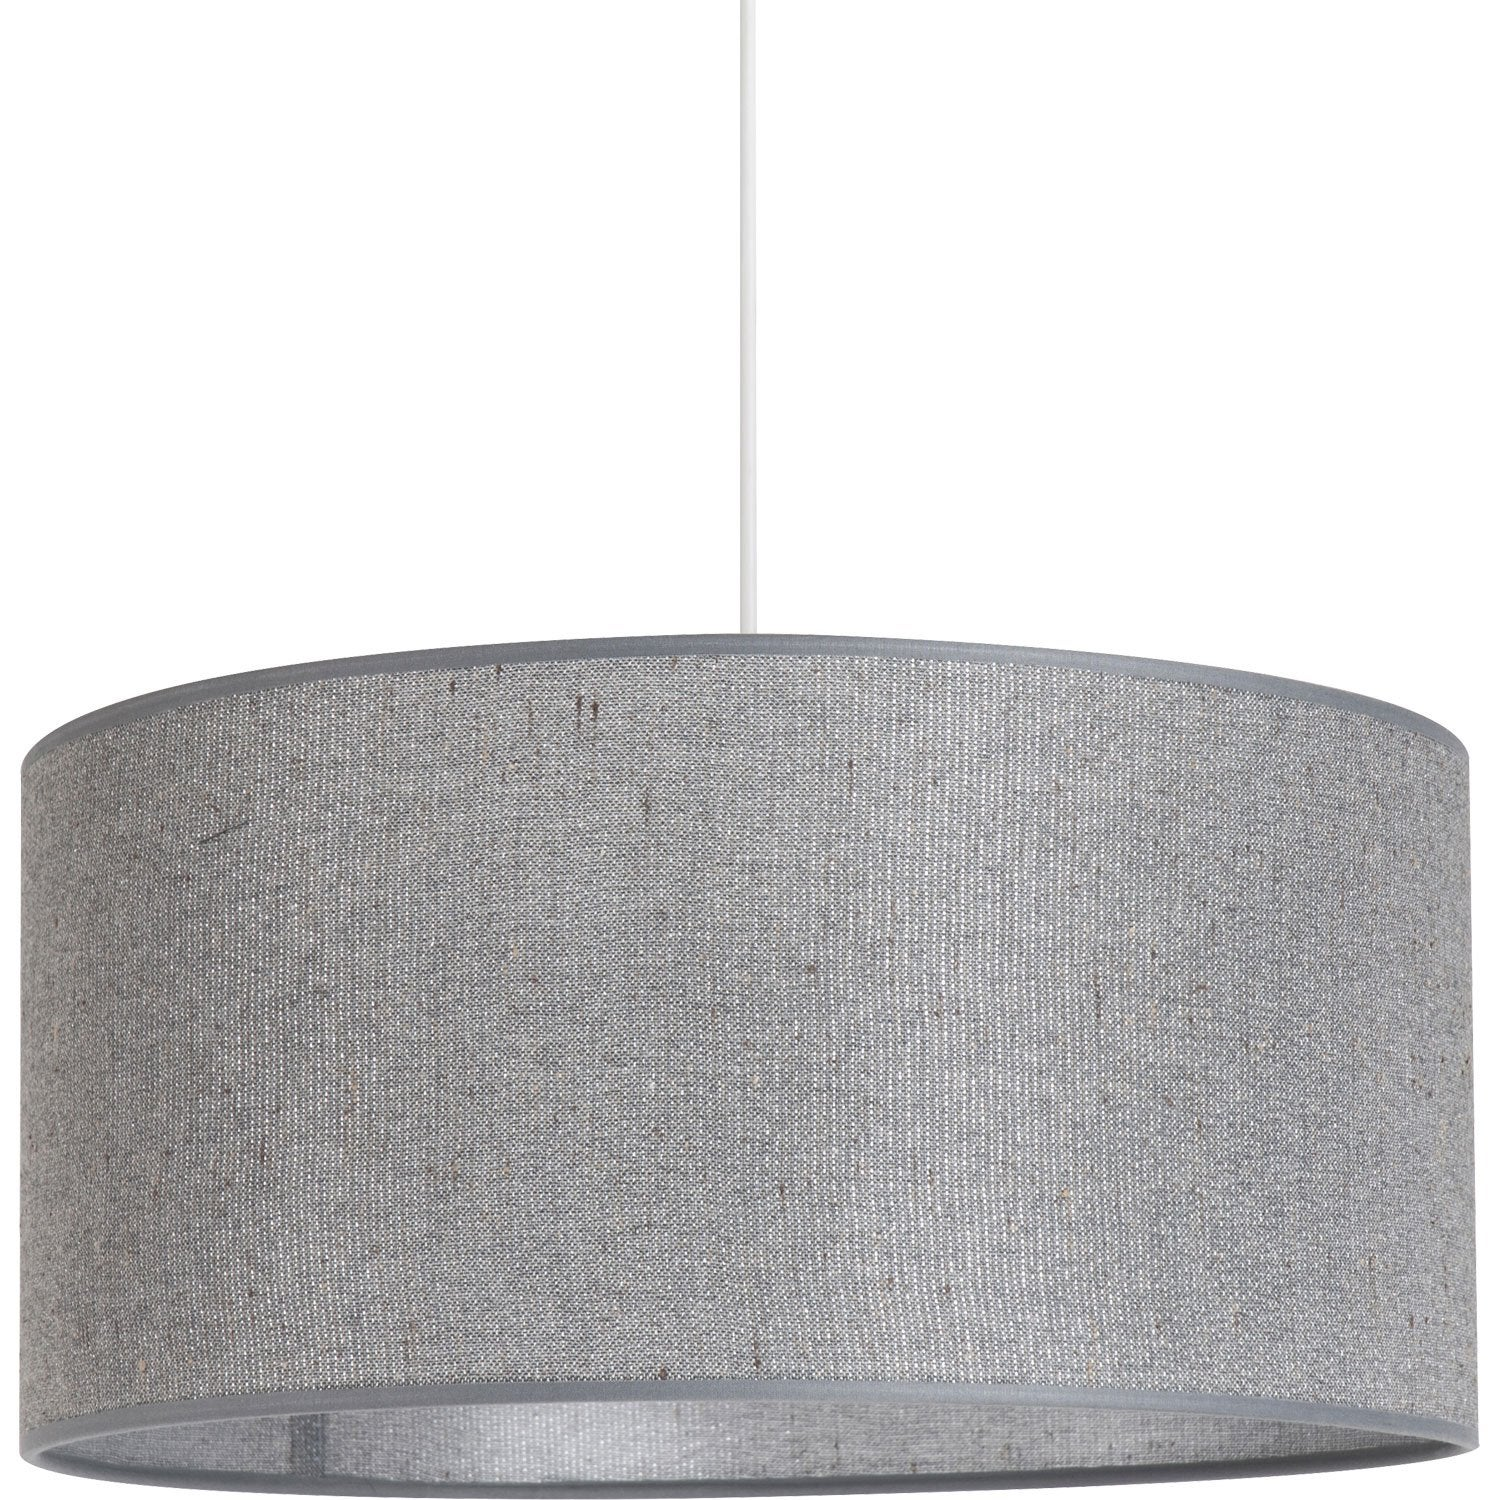 Suspension moderne gris paillettes coton gris 1 x 100 w - Abat jour suspension leroy merlin ...